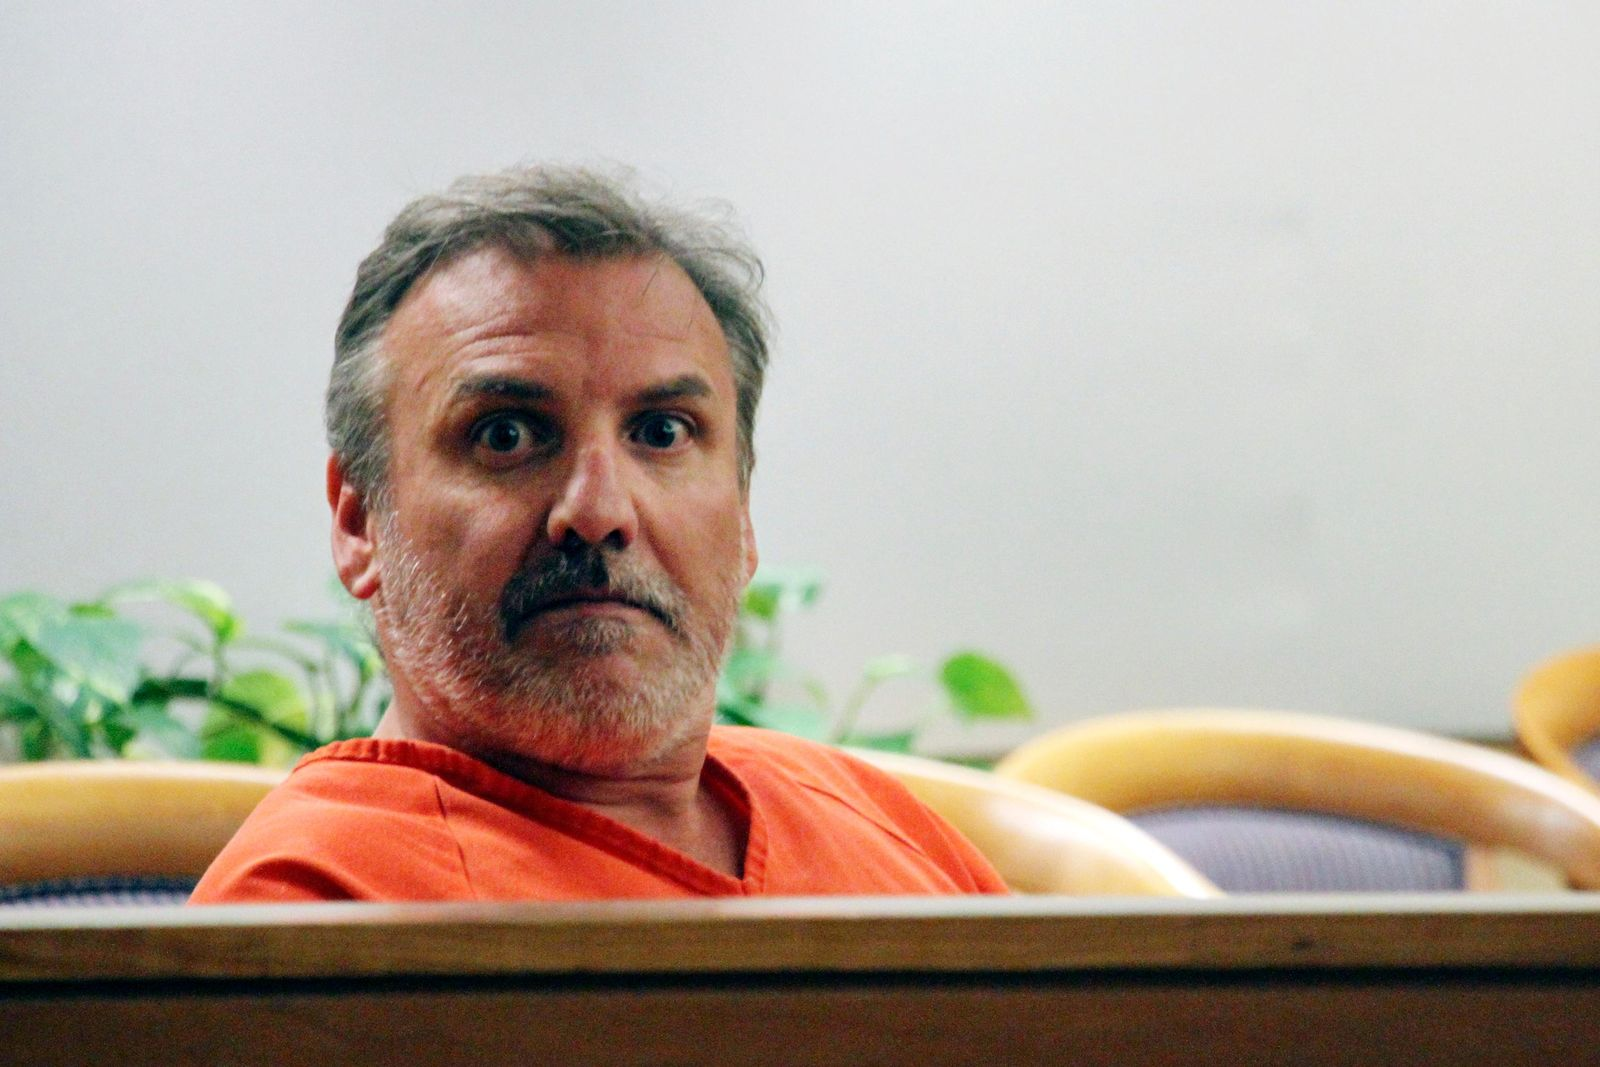 FILE - In this Wednesday, Oct. 16, 2019, file photo, Brian Steven Smith sits in a courtroom while waiting for his arraignment to start in Anchorage, Alaska. Losing a digital memory card that contained photos and videos of a horrendous killing may have been careless, but what led police to charge Smith was something he had no control over whatsoever: His South African accent. (AP Photo/Mark Thiessen, File)